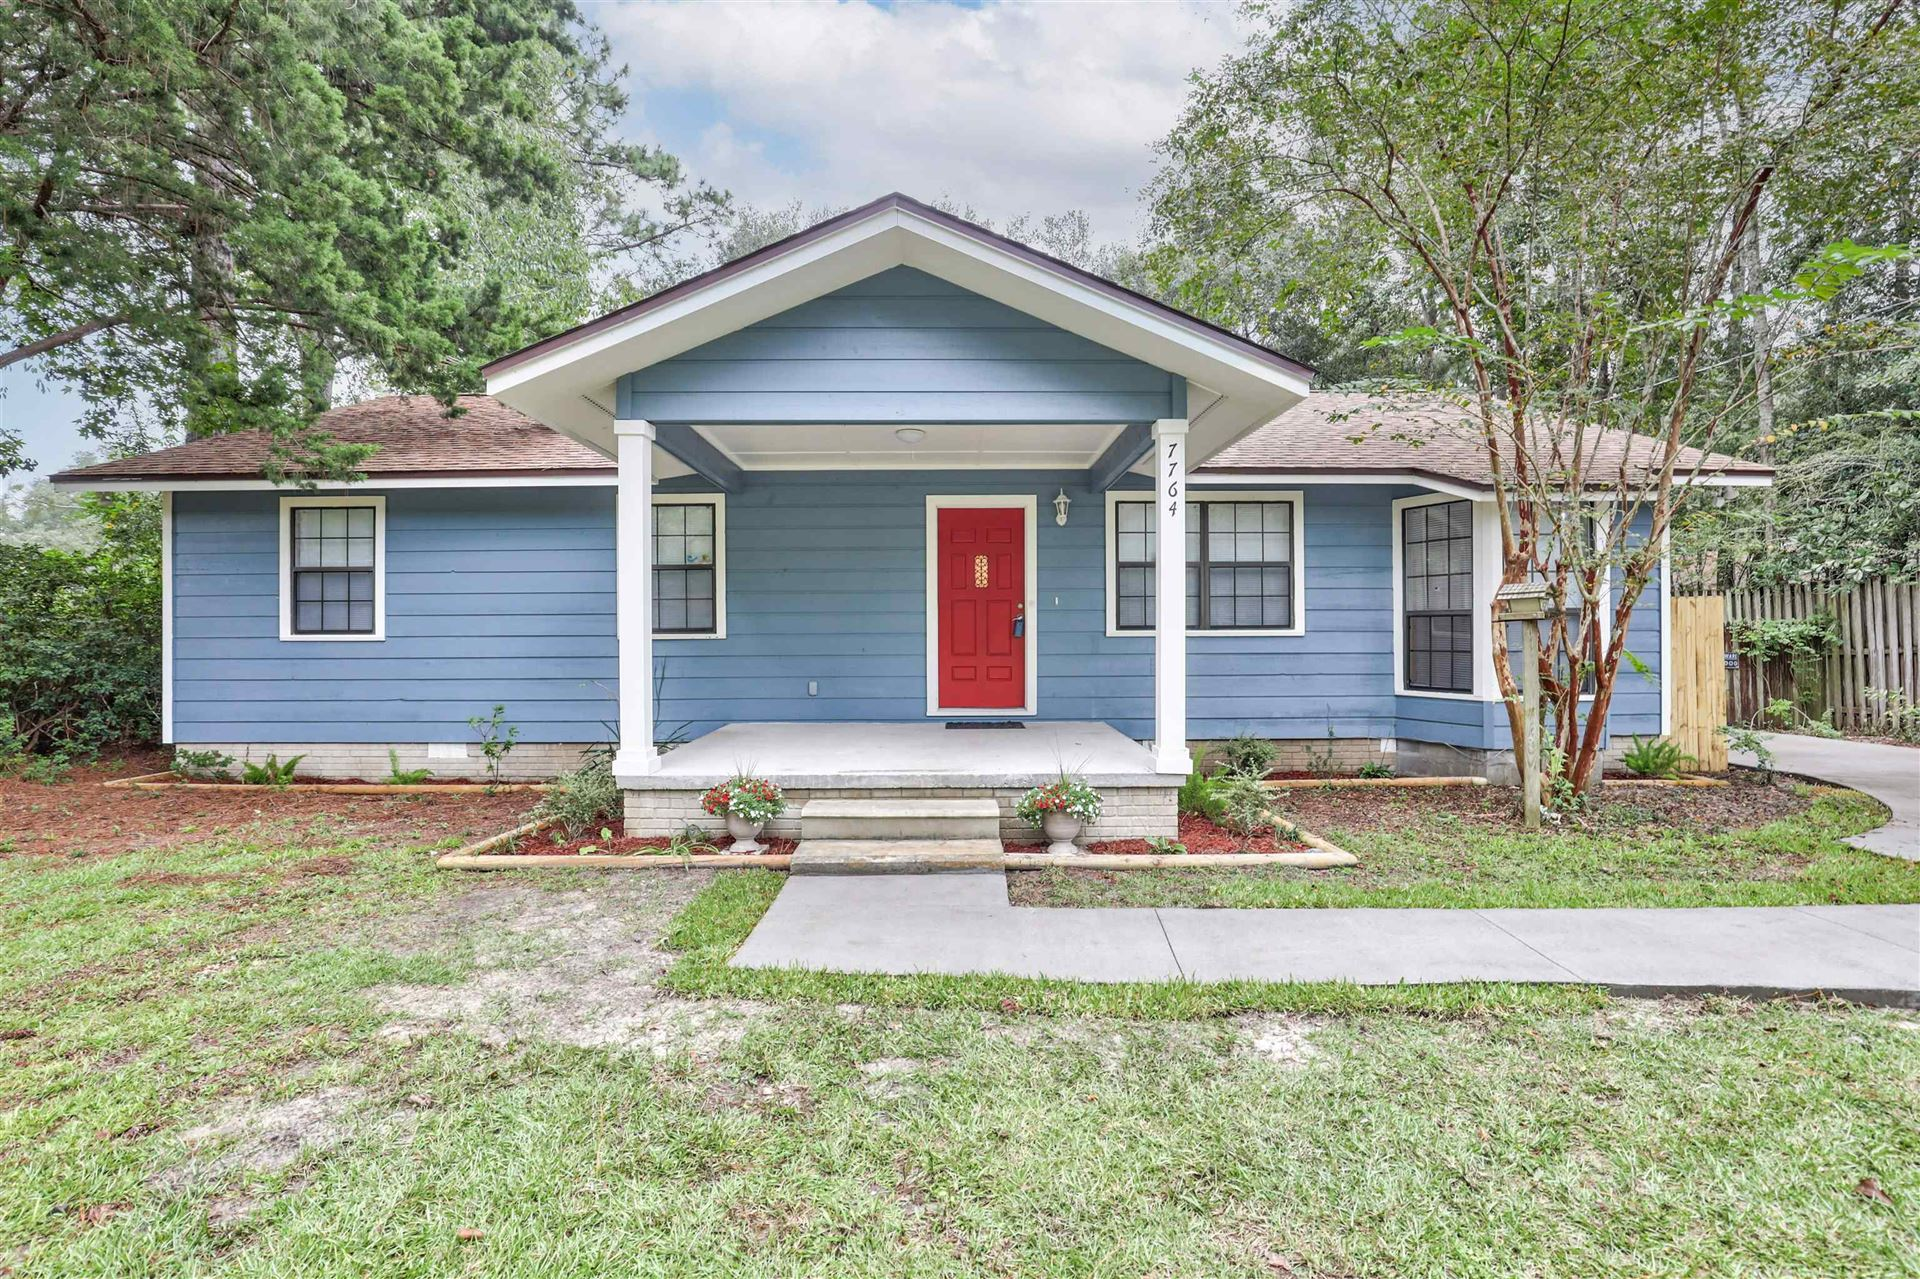 Photo of 7764 Christy Cary Lane, TALLAHASSEE, FL 32304 (MLS # 338184)